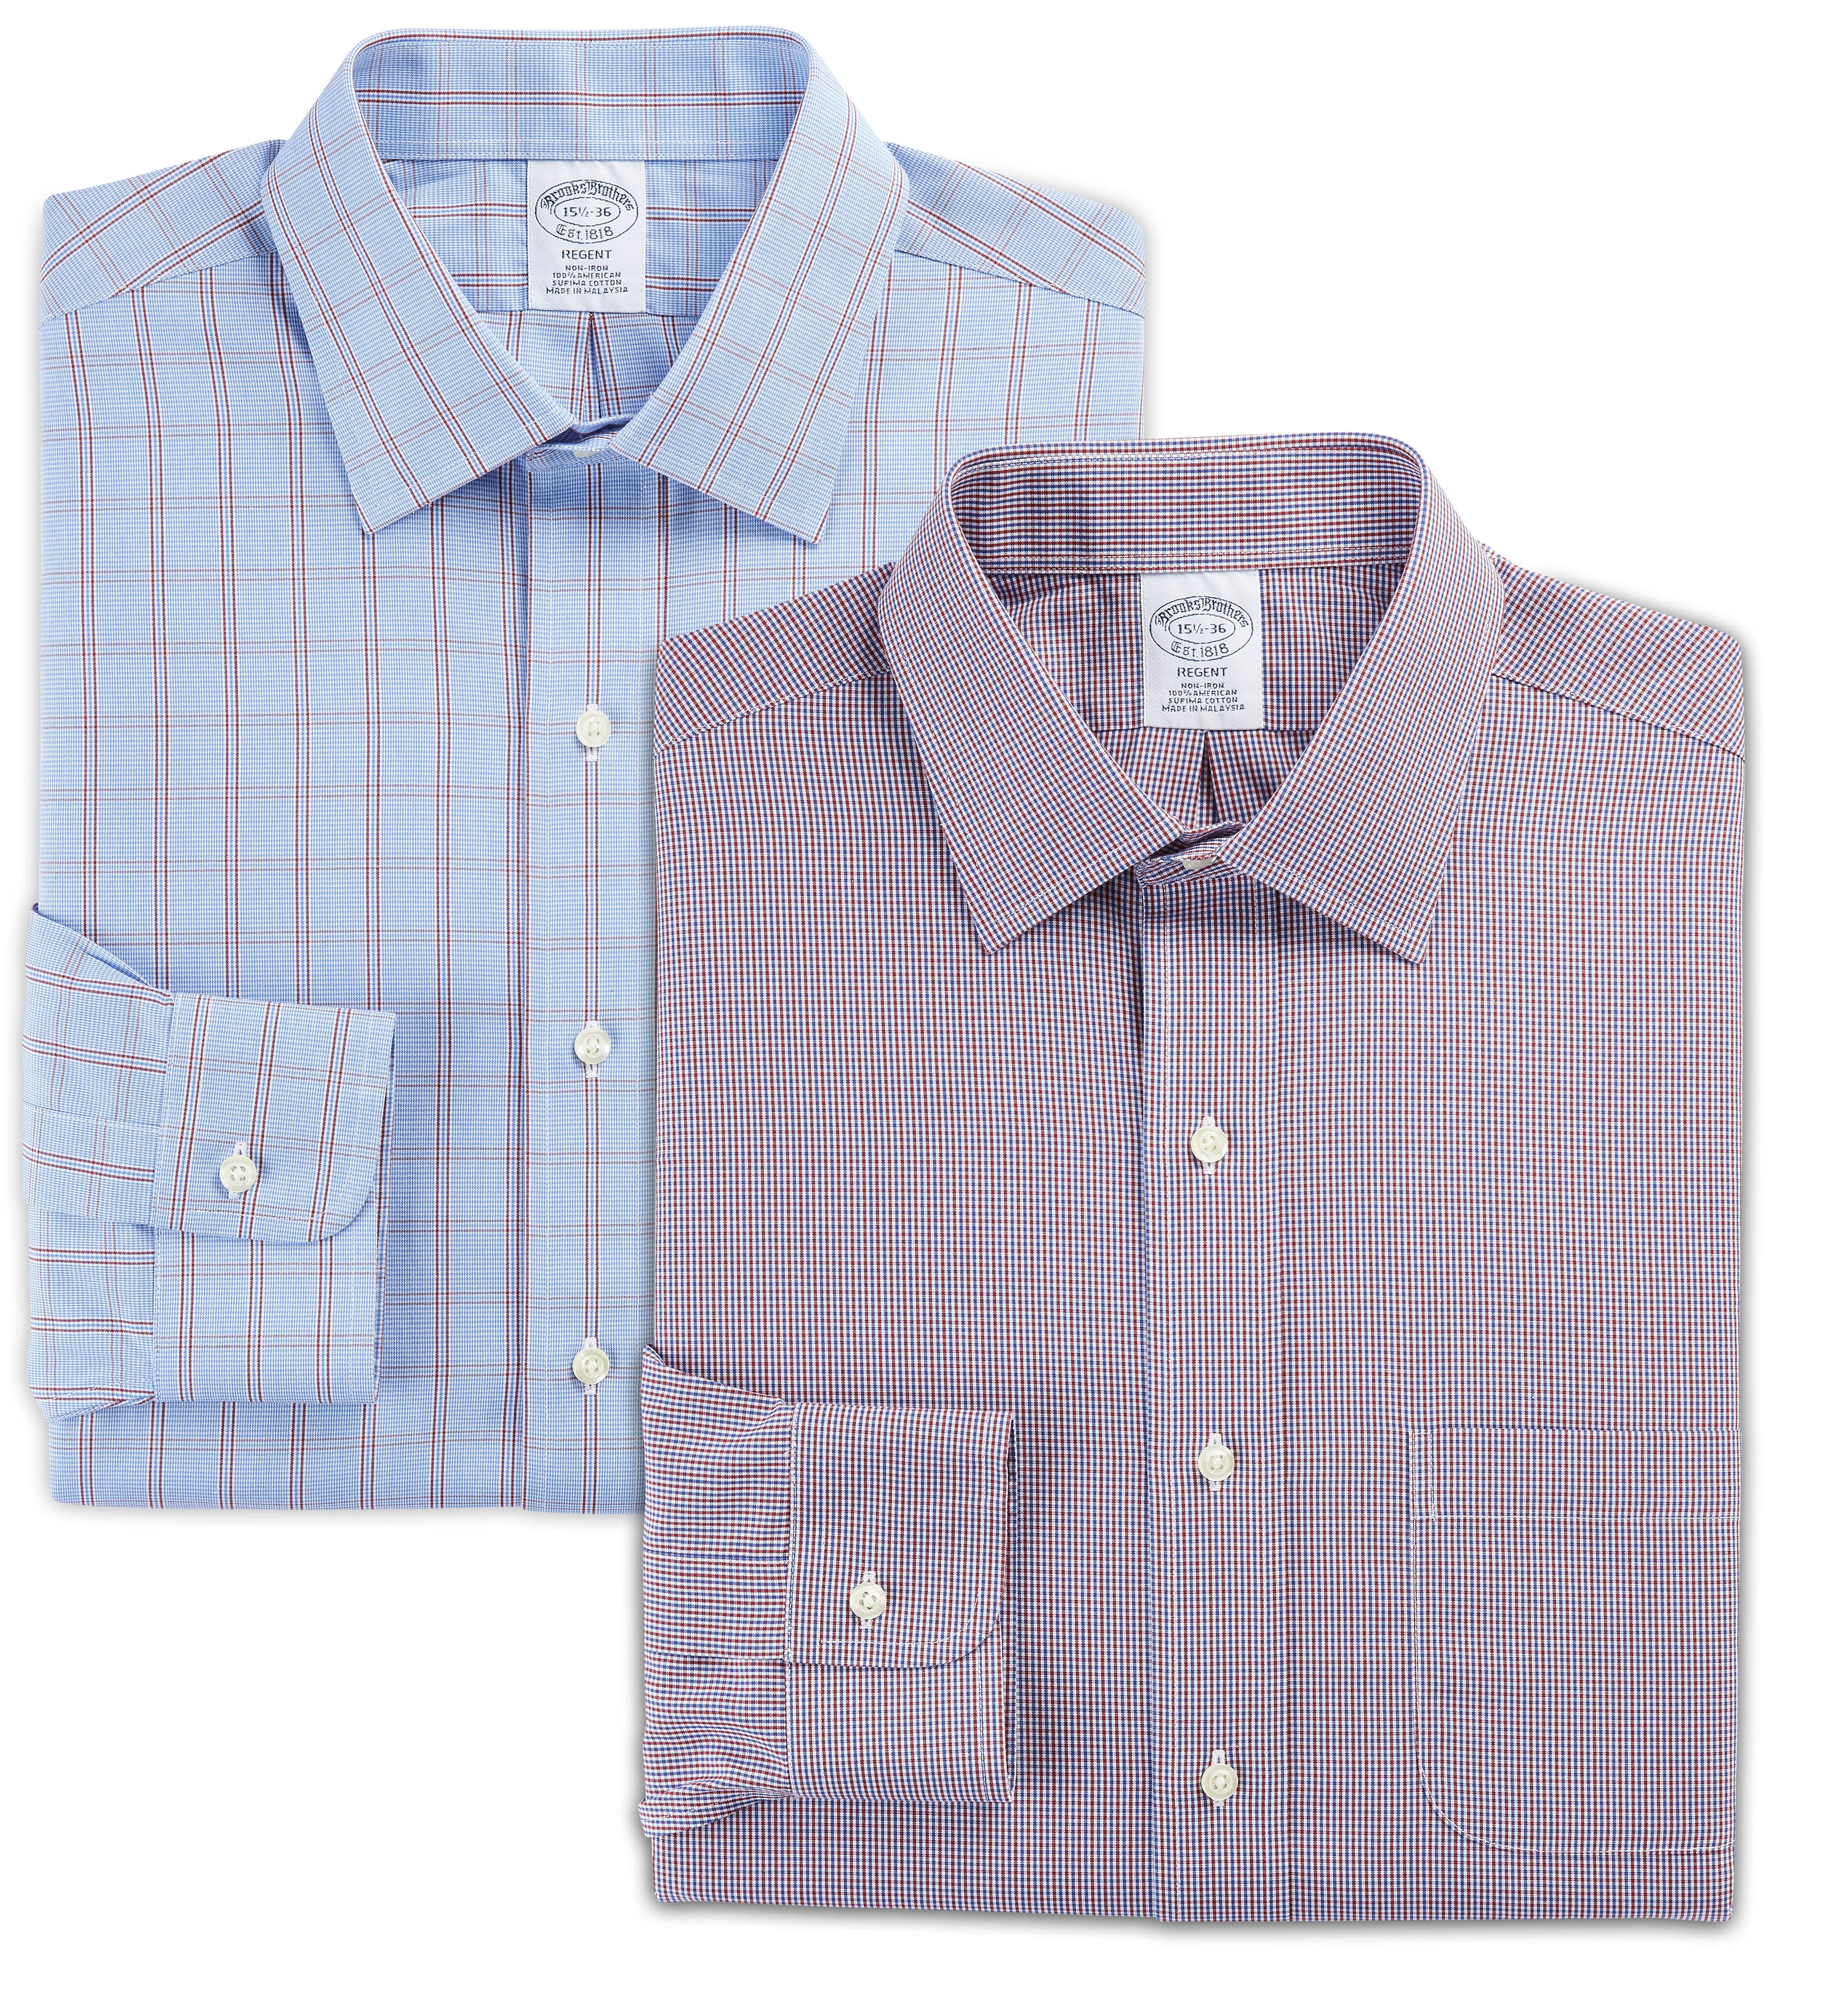 MIX & MATCH BROOKS BROTHERS LONG-SLEEVE DRESS SHIRTS